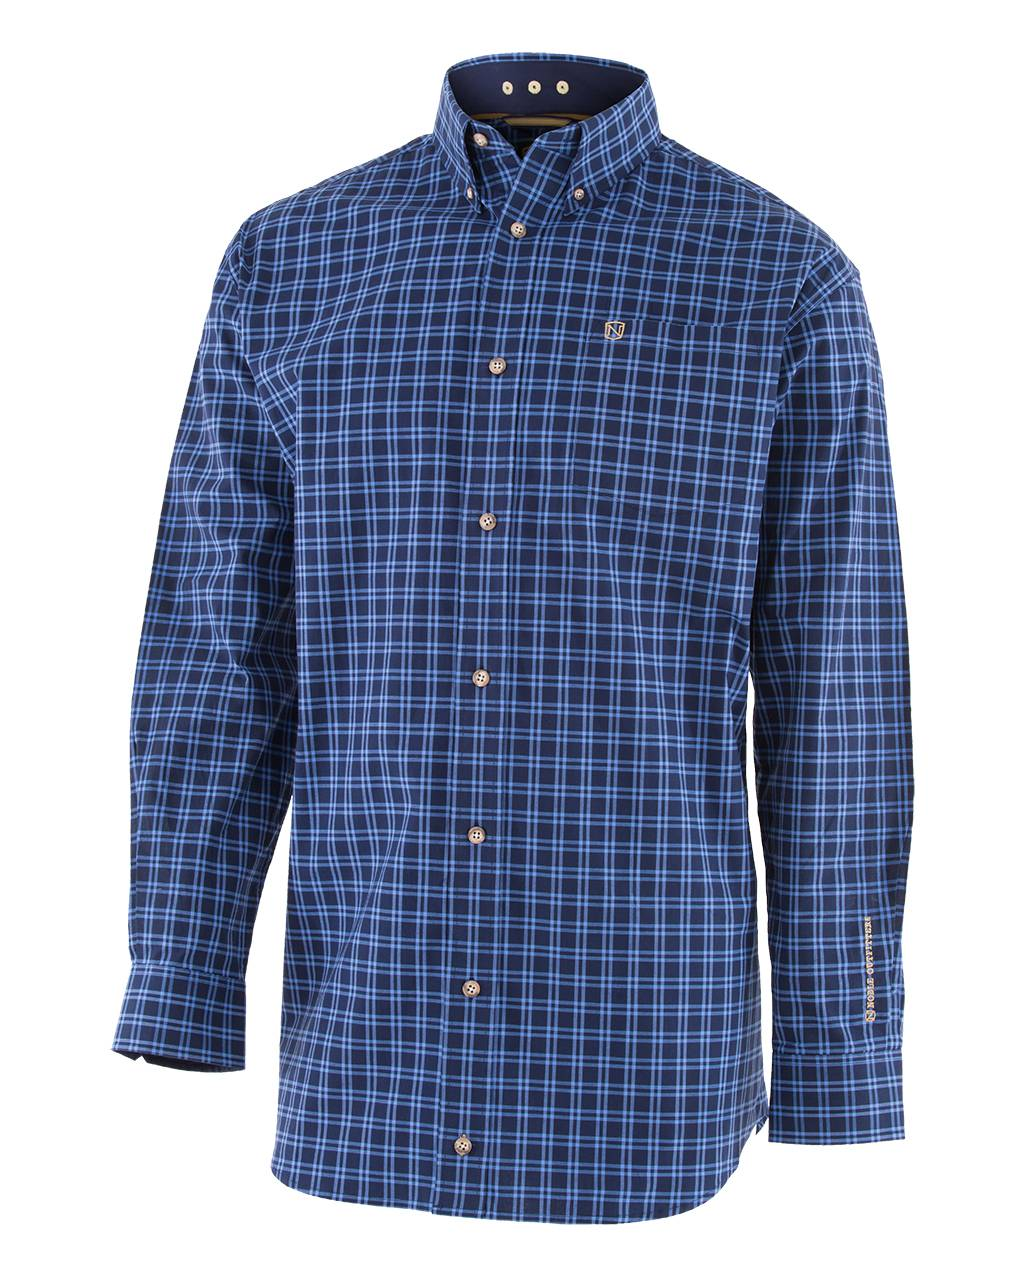 Noble Outfitters Generations Fit Shirt - Mens, Plaid